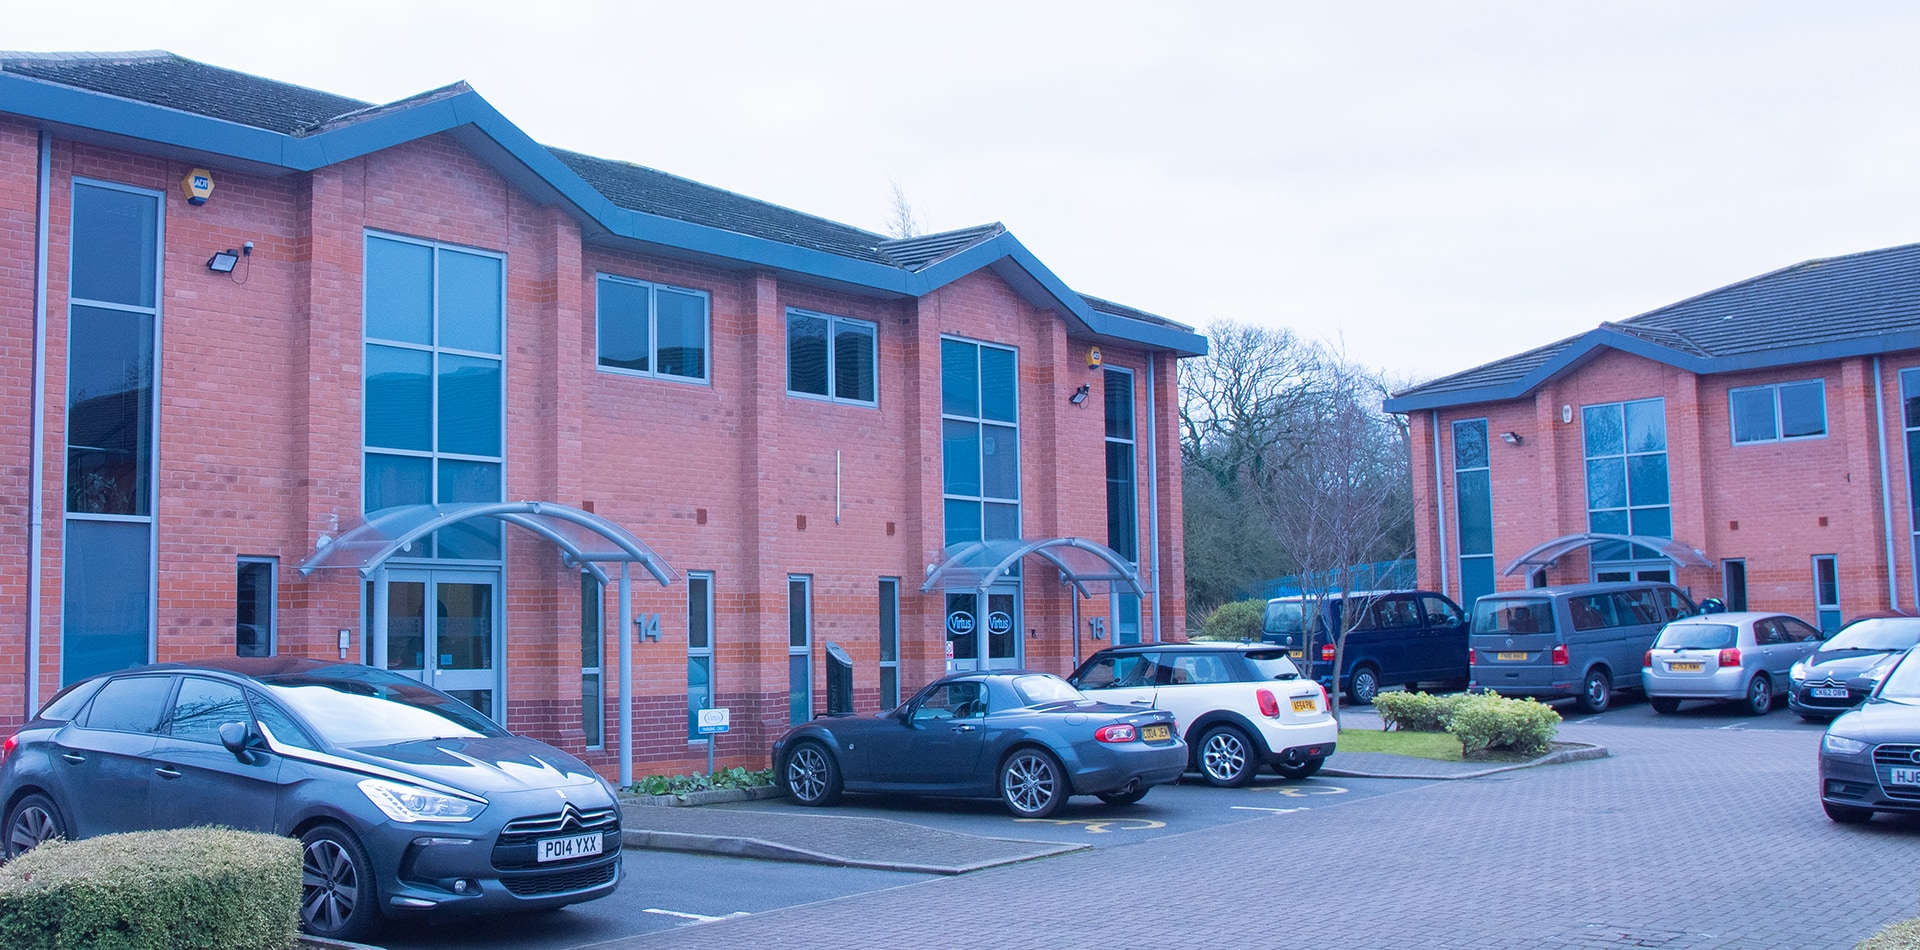 Building of Marlow Proactive LTD